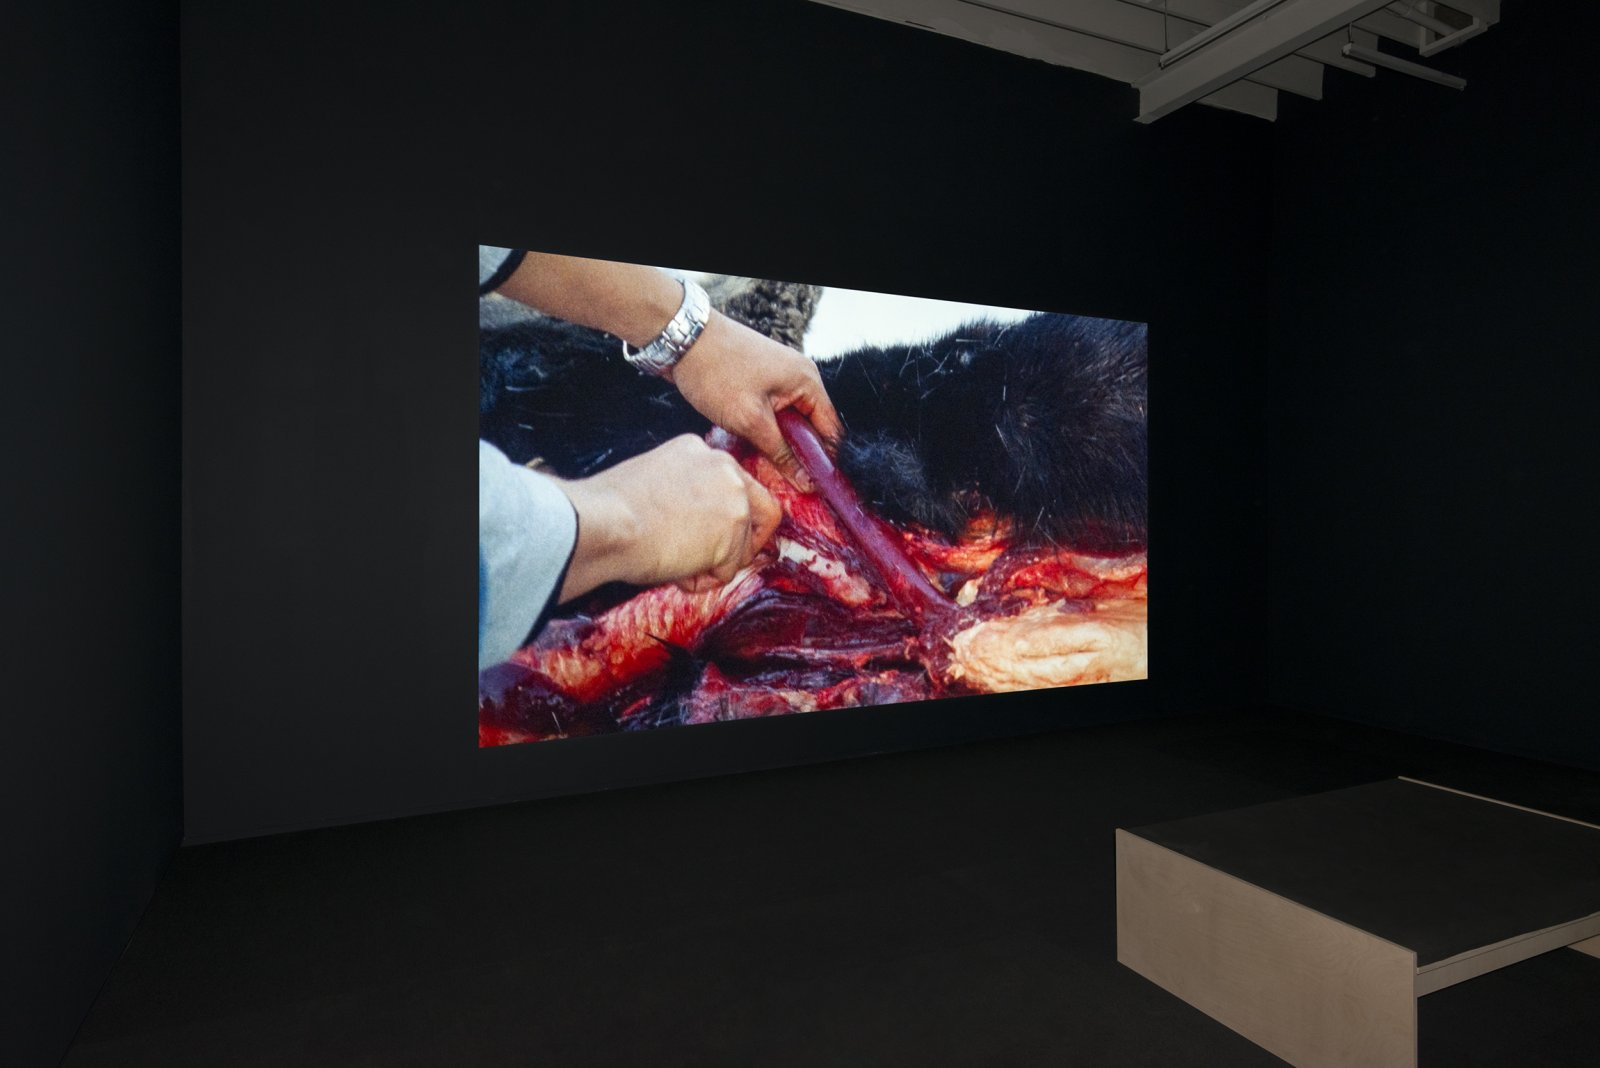 Brian Jungen and Duane Linklater, Modest Livelihood, 2012, super 16mm film, transferred to blu-ray, 50 minutes, silent